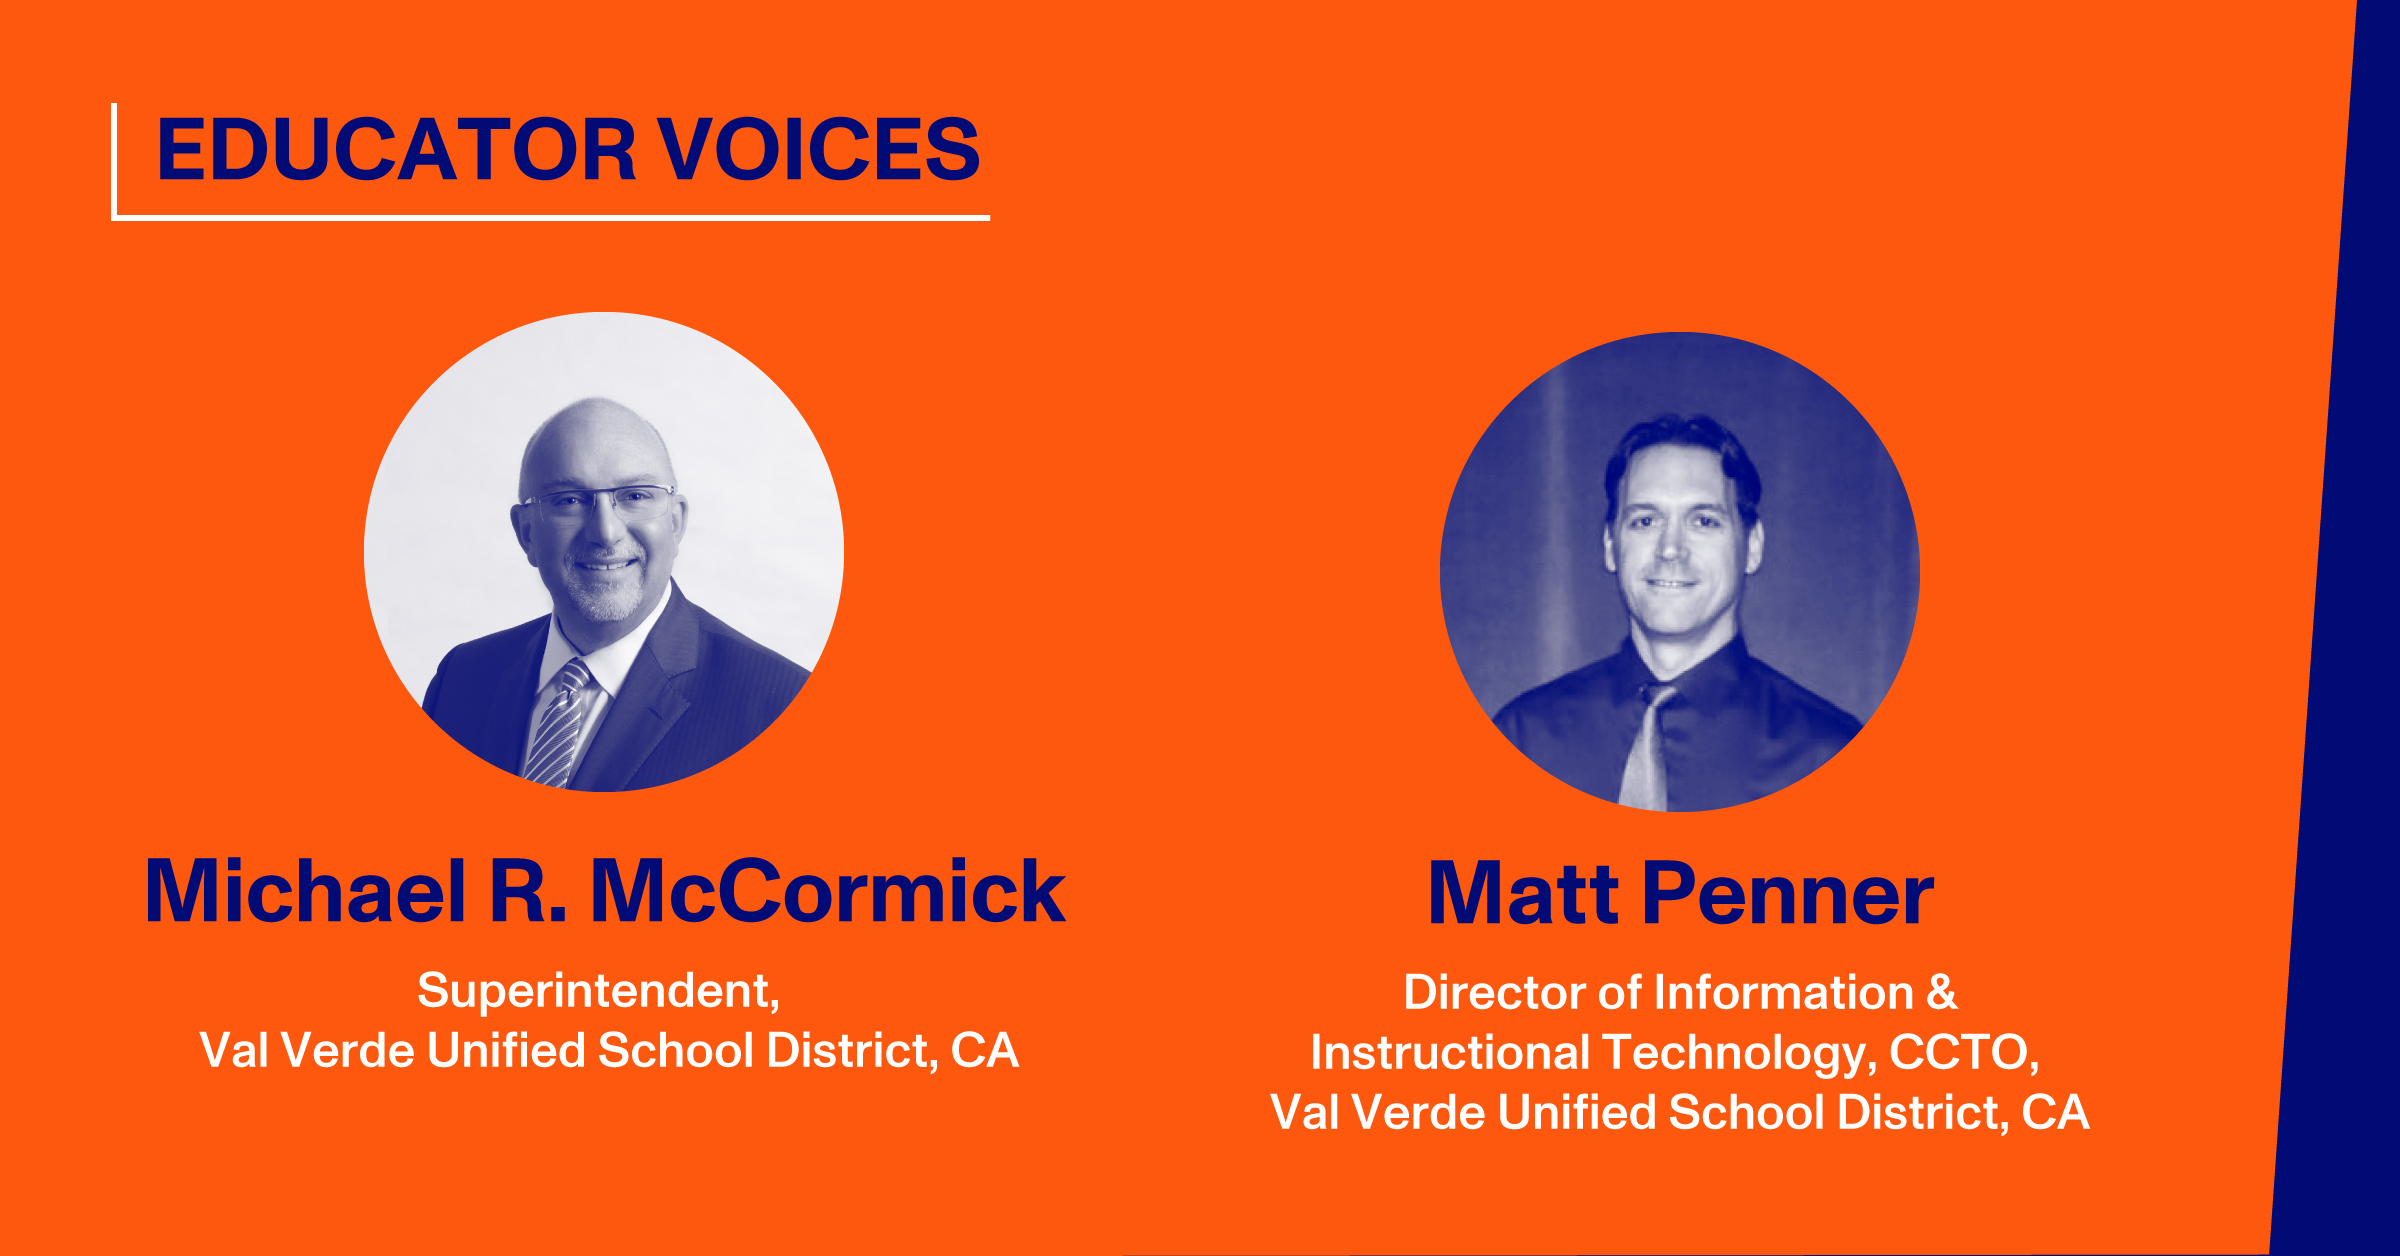 Michael R. McCormick, Superintendent, Val Verde Unified School District, CA; Matt Penner, Director of Information &Instructional Technology, CCTO, Val Verde Unified School District, CA